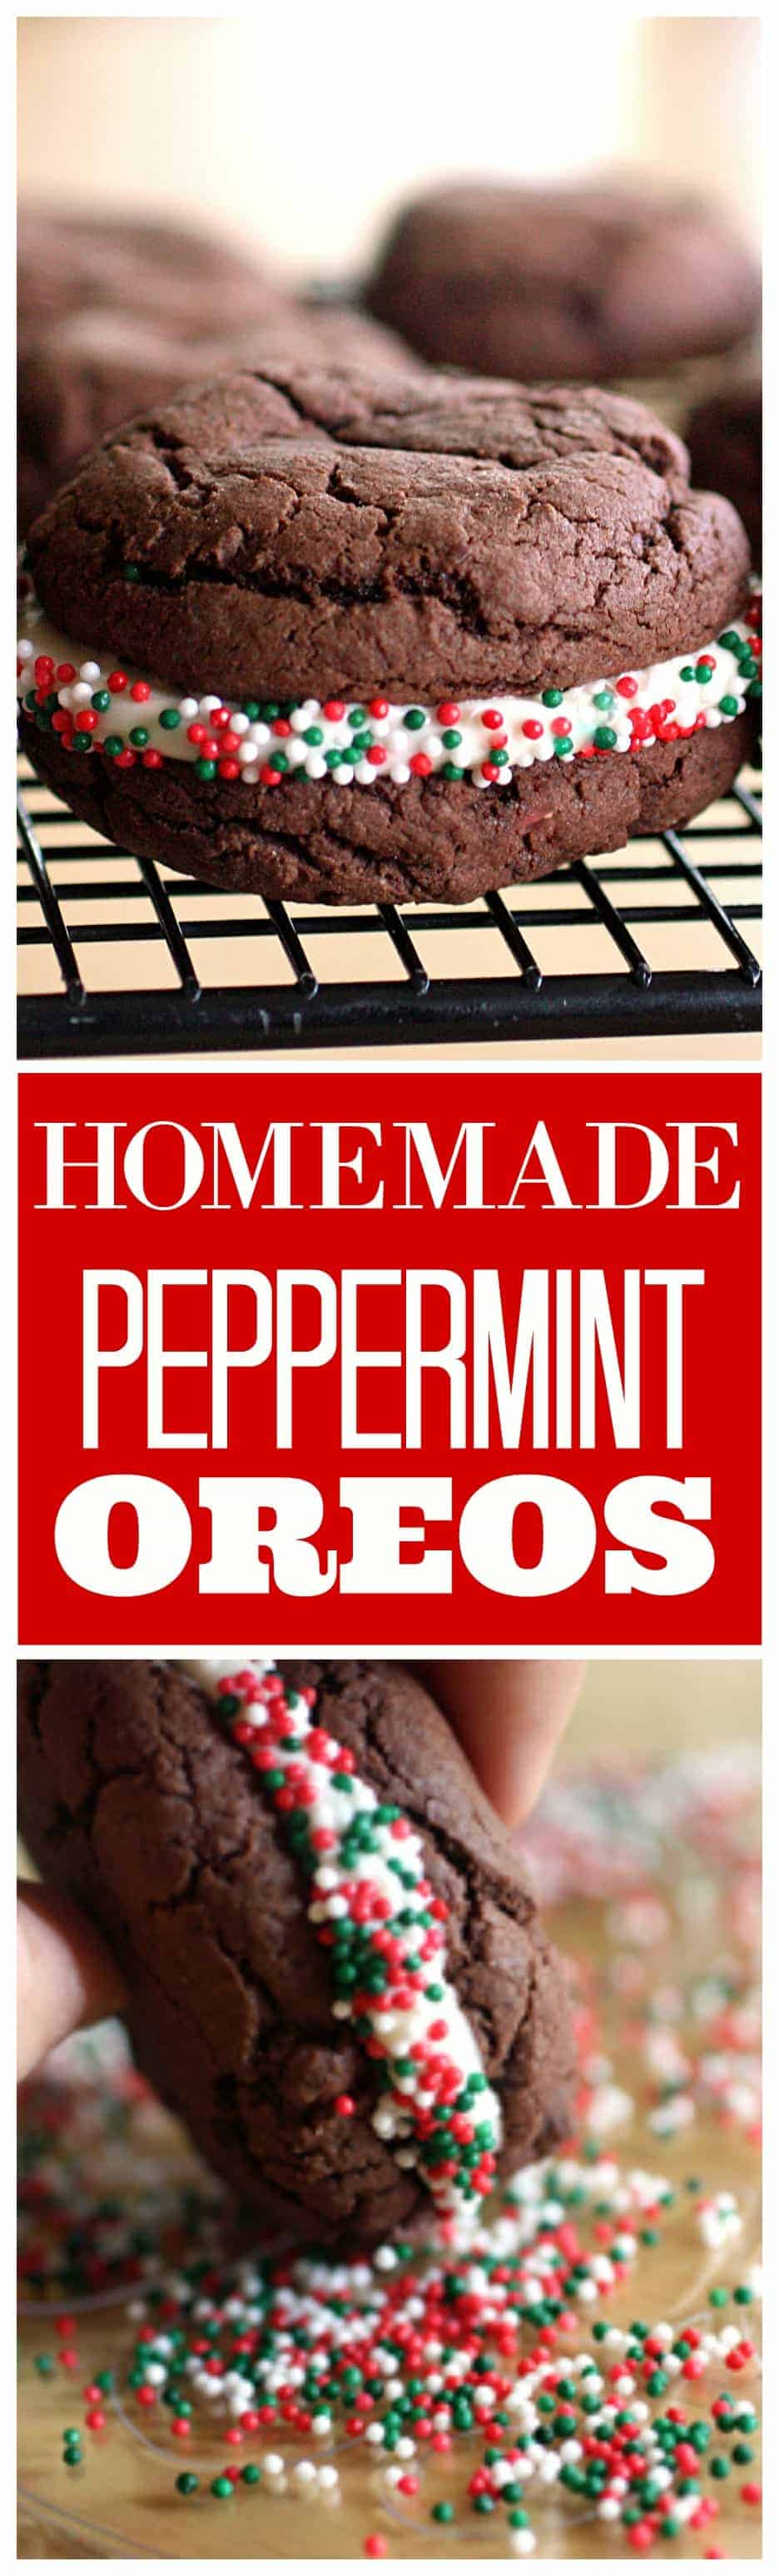 Homemade Peppermint Oreos - the-girl-who-ate-everything.com